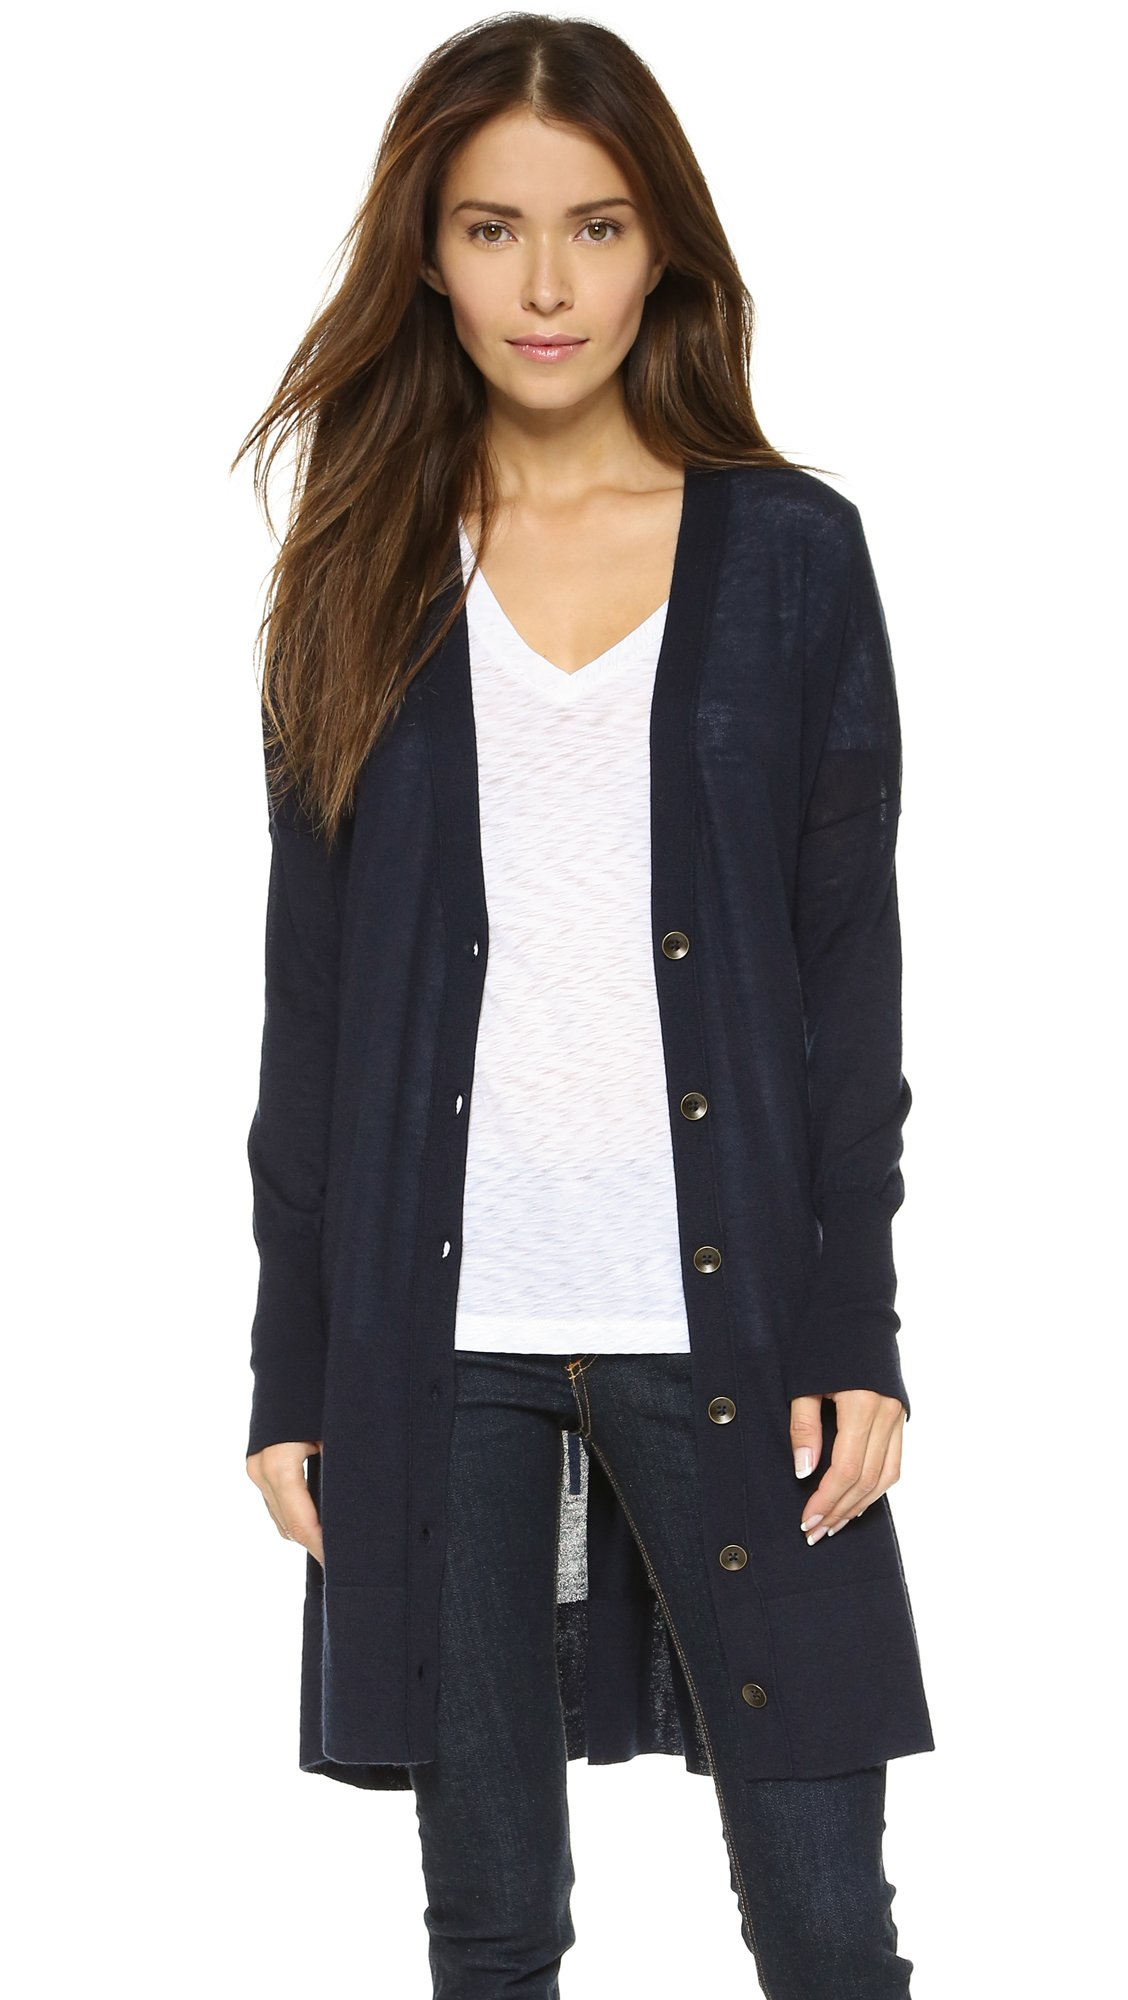 Rag & bone Whitney Cashmere Cardigan - Navy in Blue | Lyst